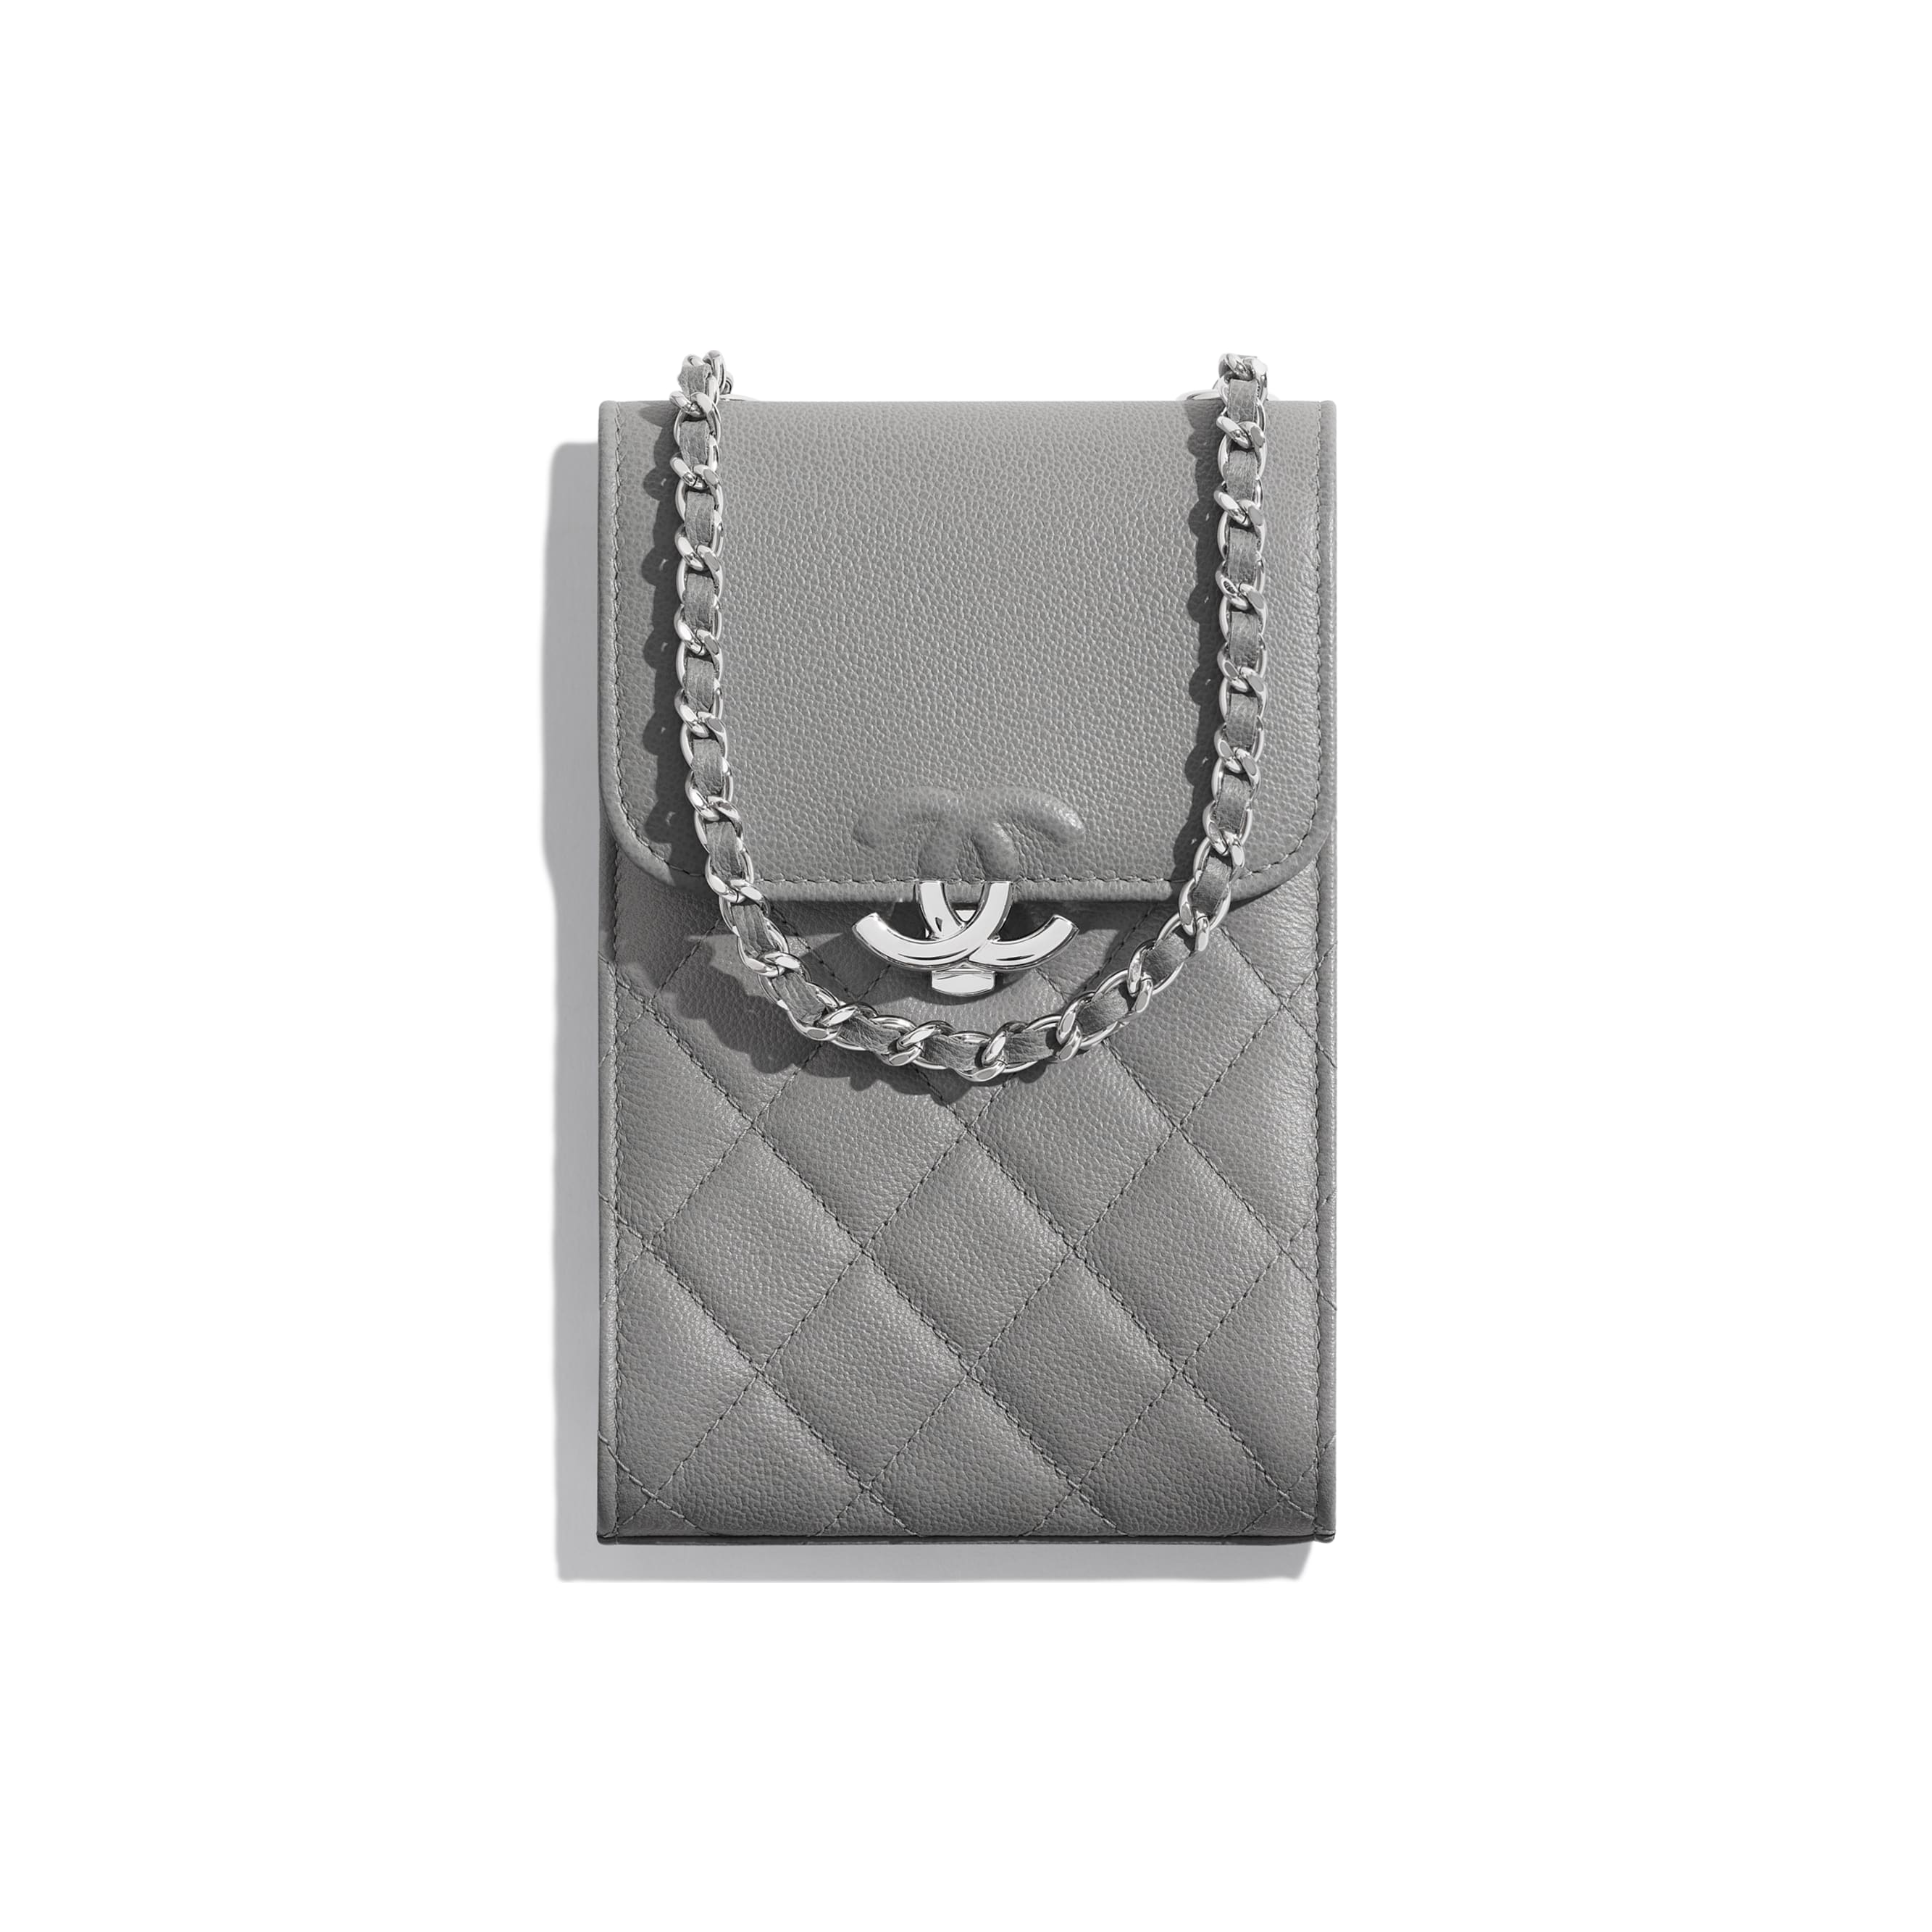 Clutch with Chain - Gray - Grained Calfskin & Silver-Tone Metal - CHANEL - Default view - see standard sized version